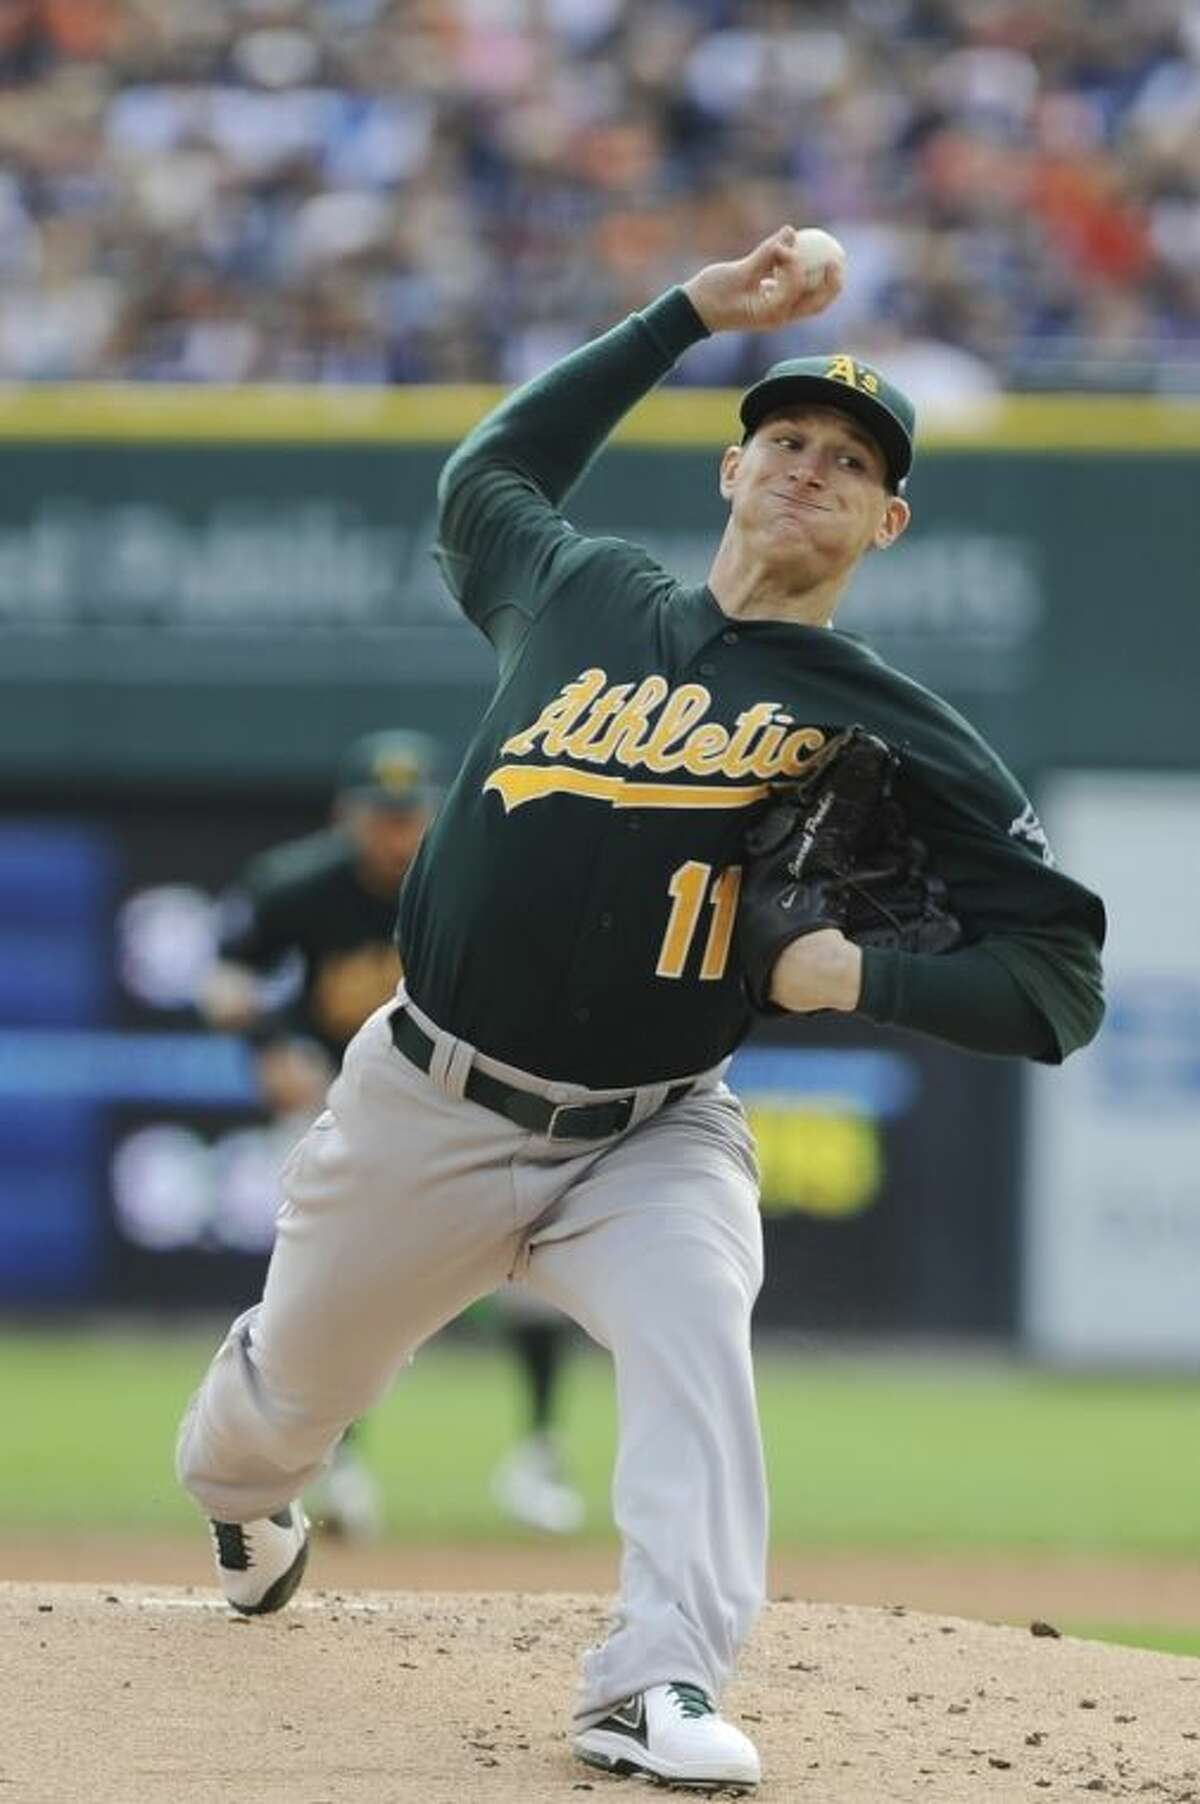 Oakland Athletics starting pitcher Jarrod Parker throws during the first inning of Game 3 of an American League baseball division series against the Detroit Tigers in Detroit, Monday, Oct. 7, 2013. (AP Photo/Lon Horwedel)